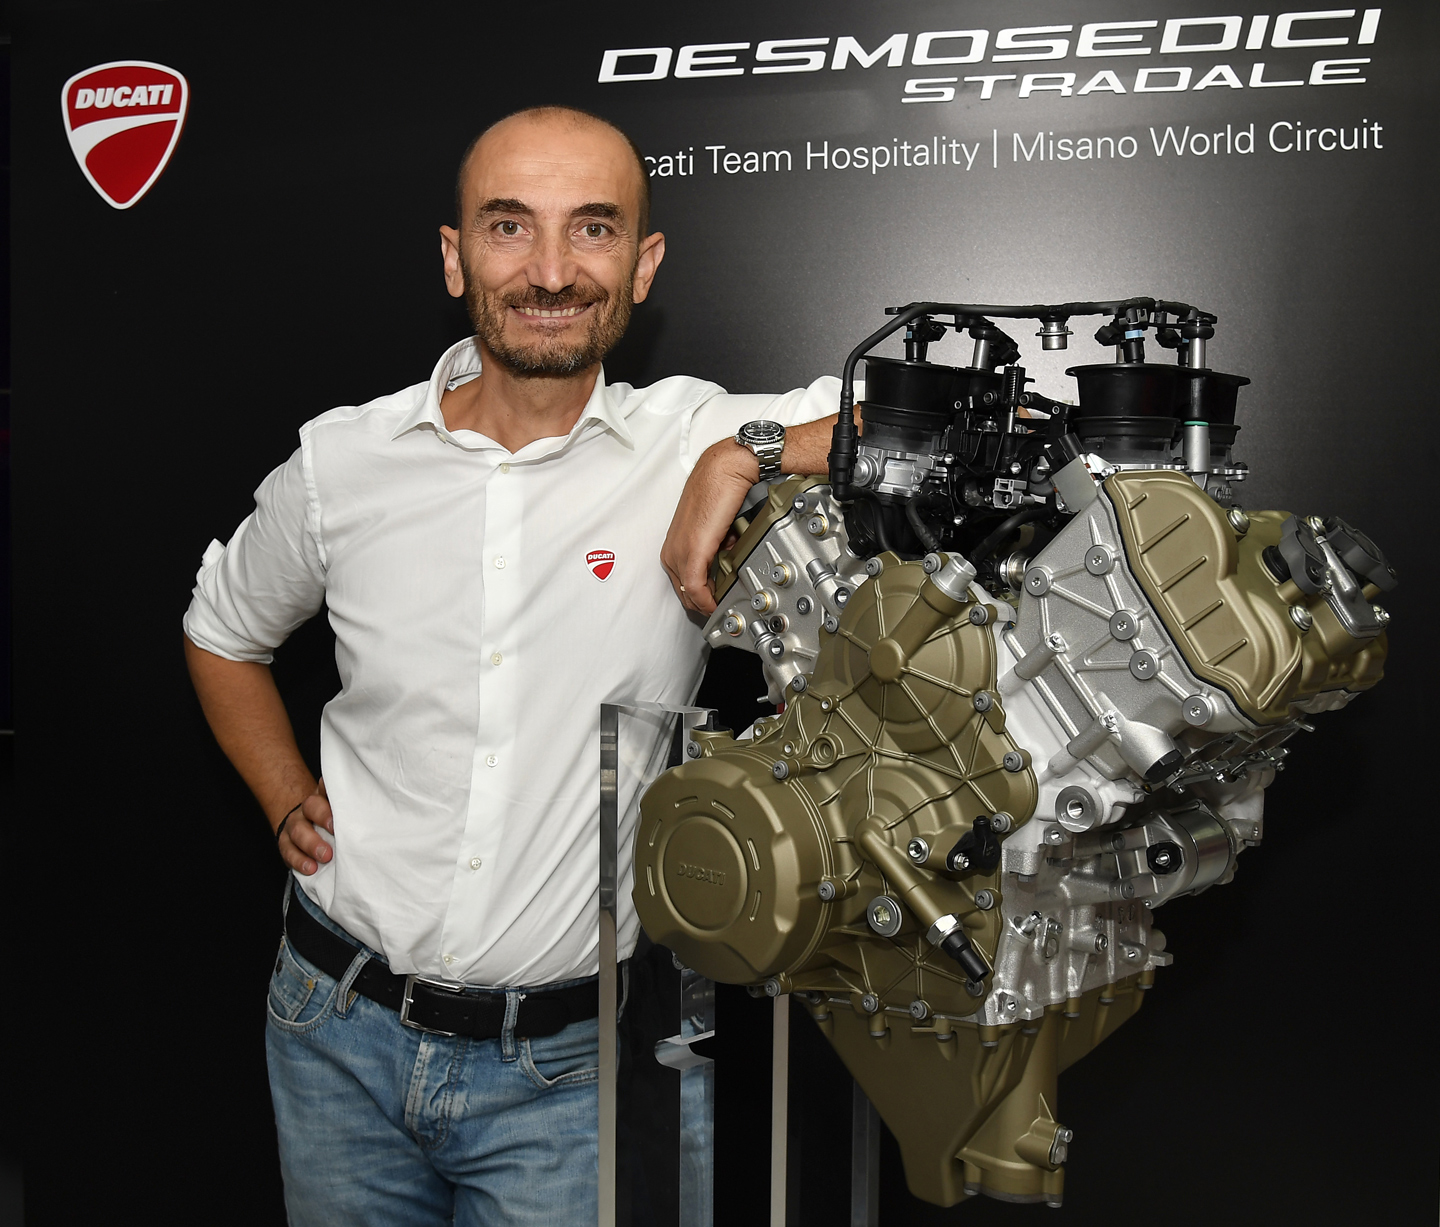 New Bike Features Ducati 2018 Desmosedici Stradle V4 Superbike Wiring Diagram Stradale Unveiled Ducatis Engine For The Future